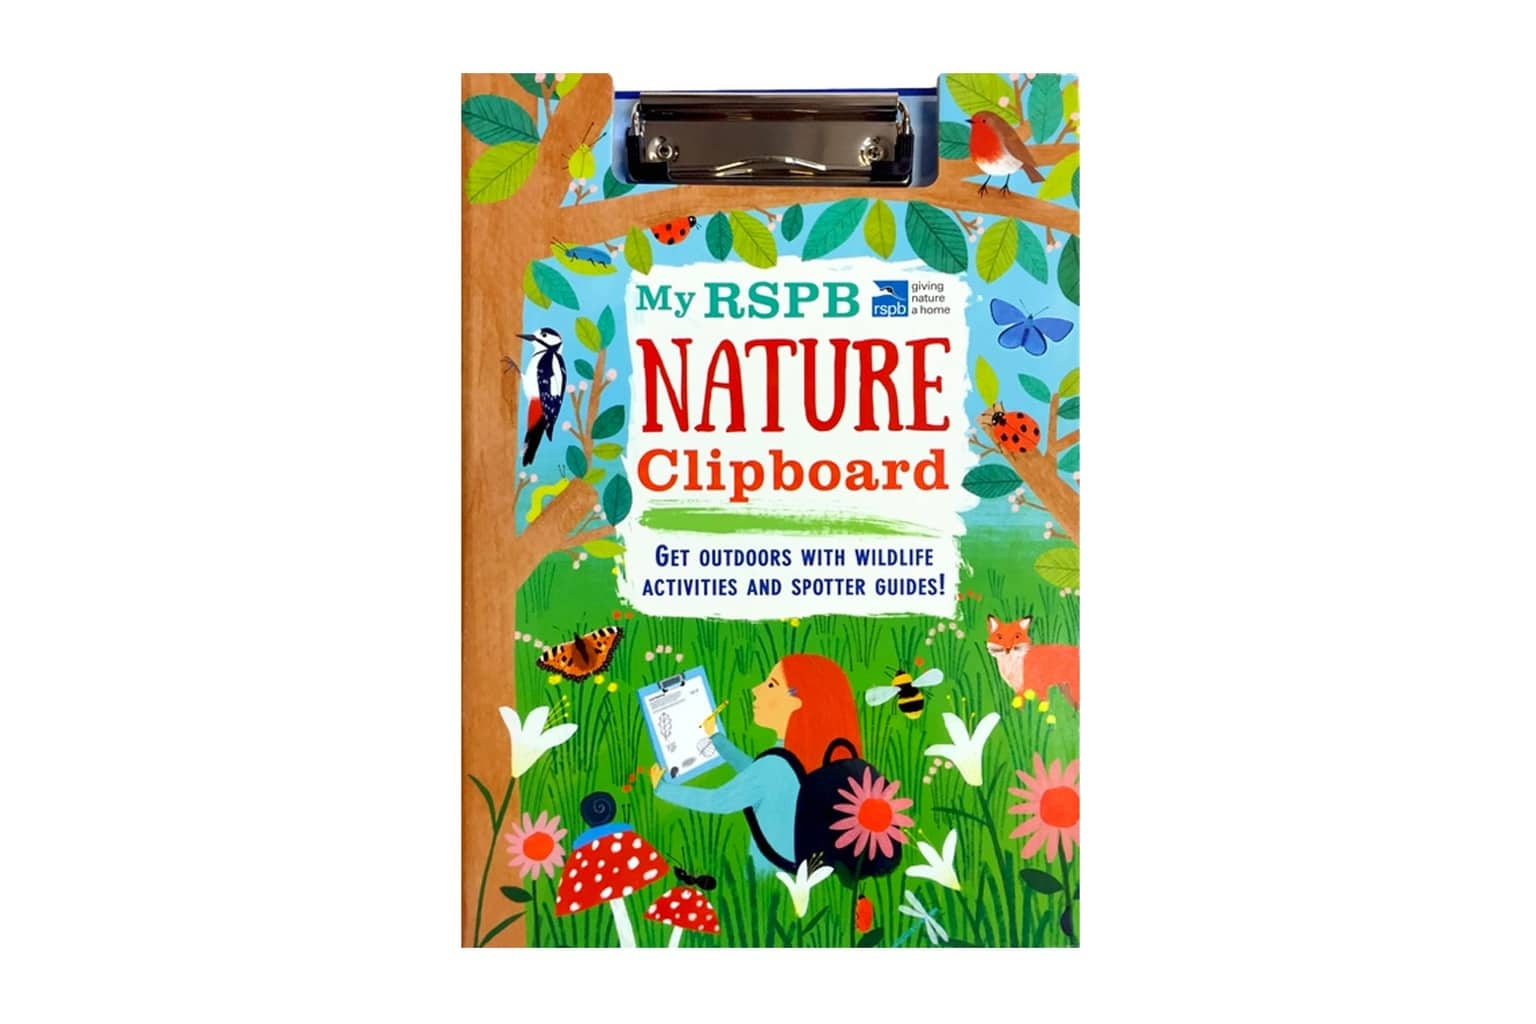 My RSPB Nature Clipboard